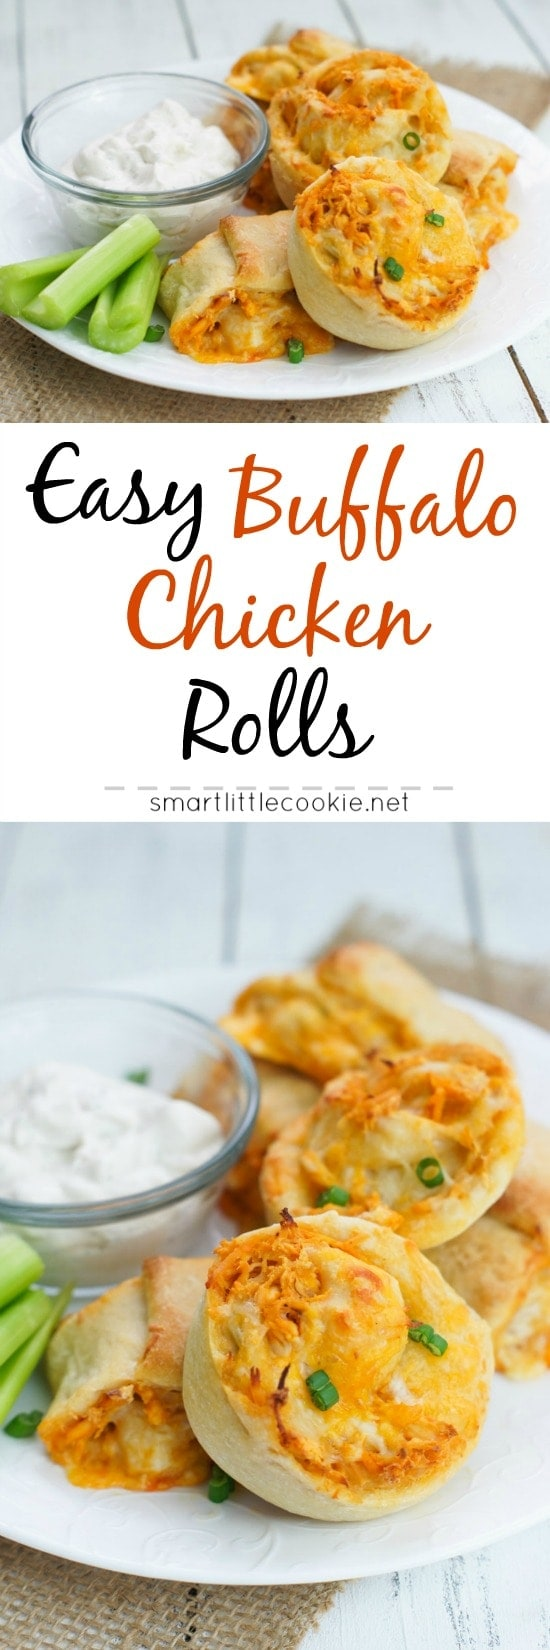 Pinterest image. Buffalo chicken rolls with text overlay.